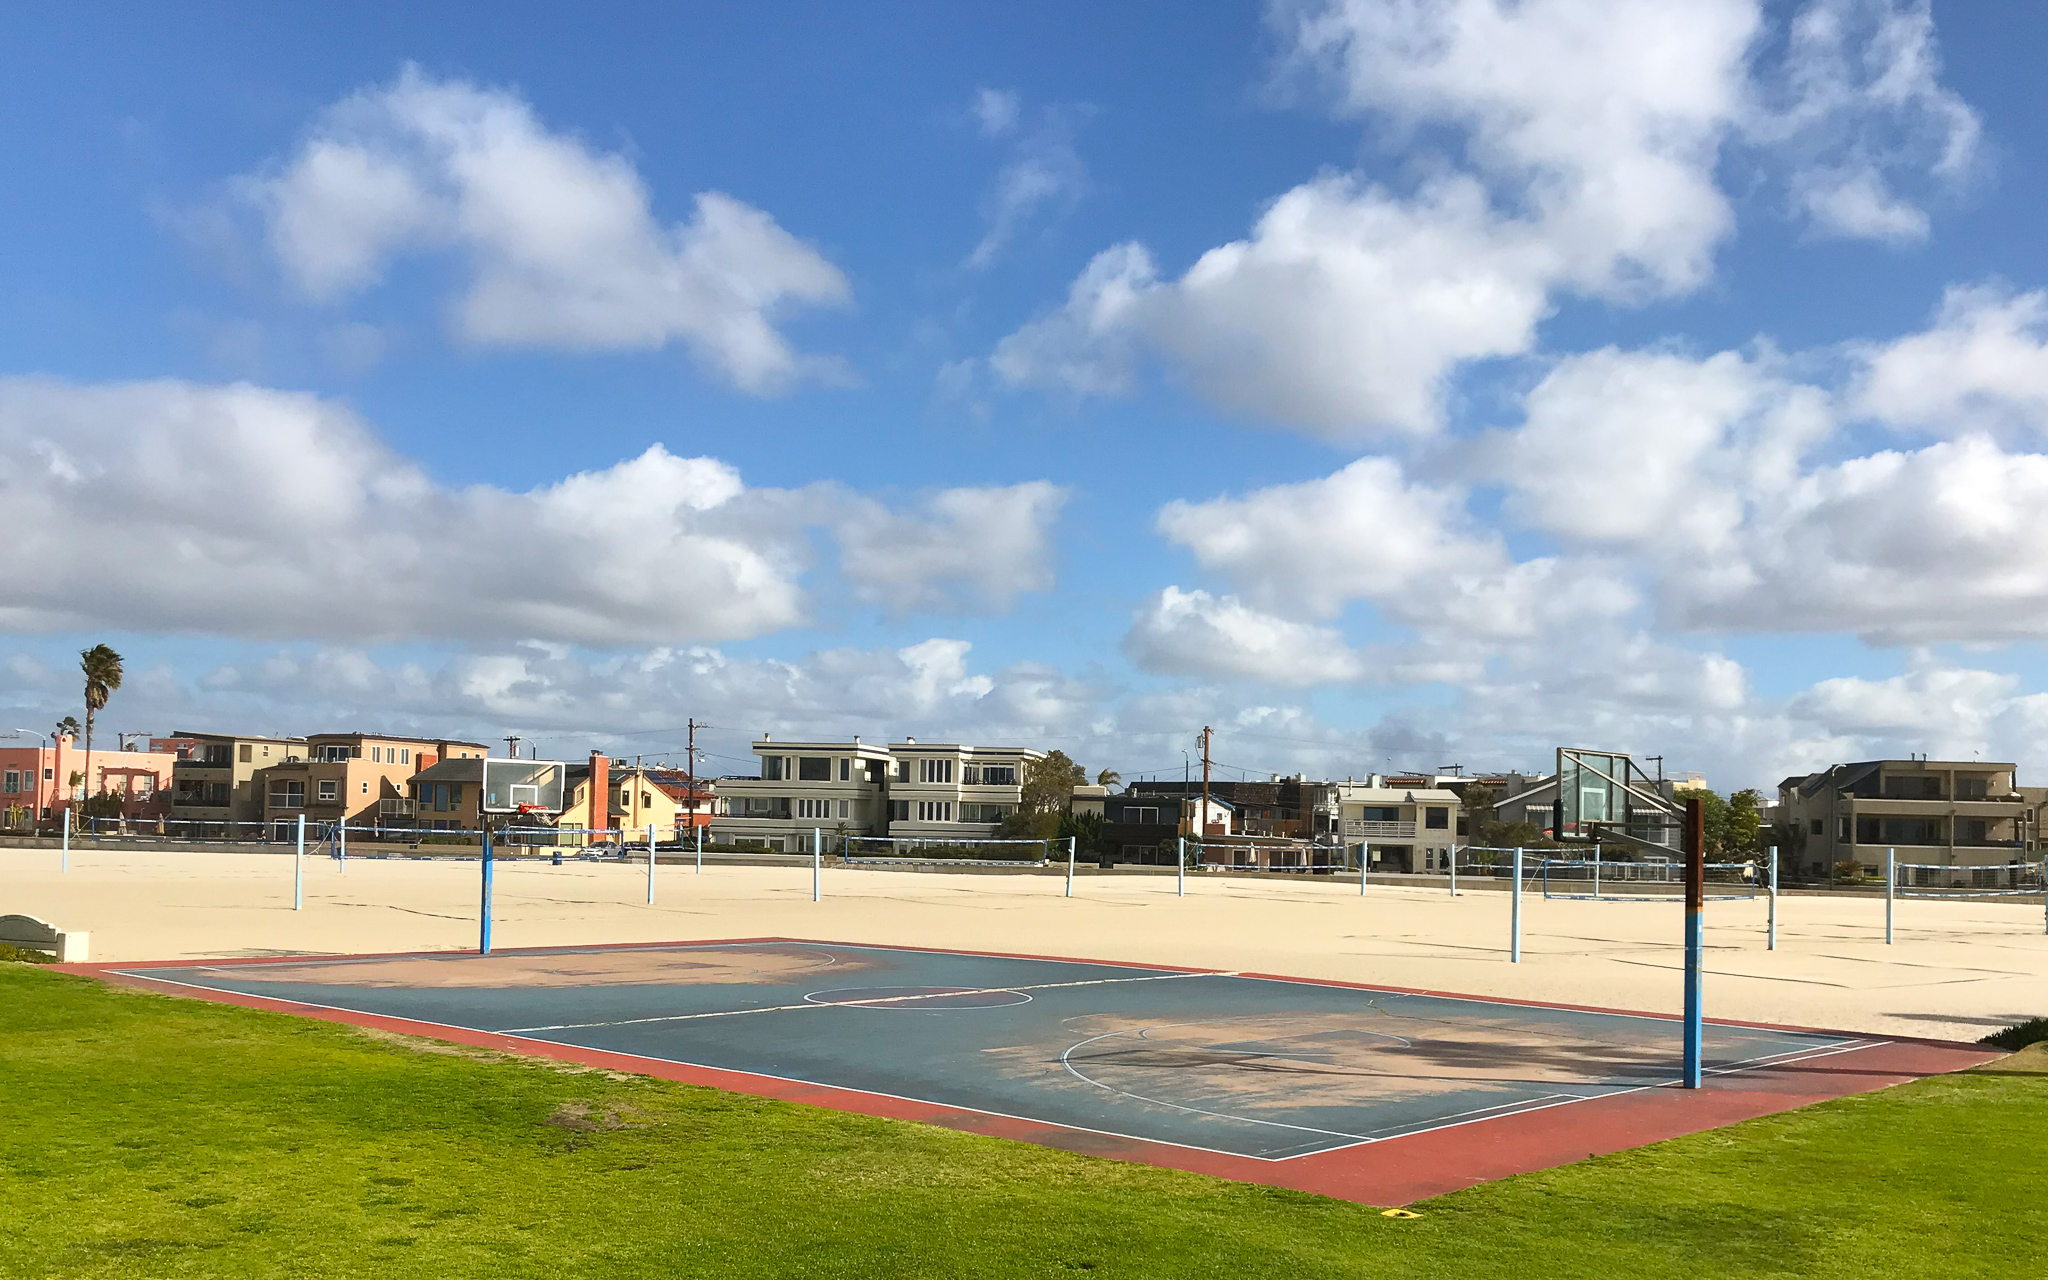 basketball courts in America